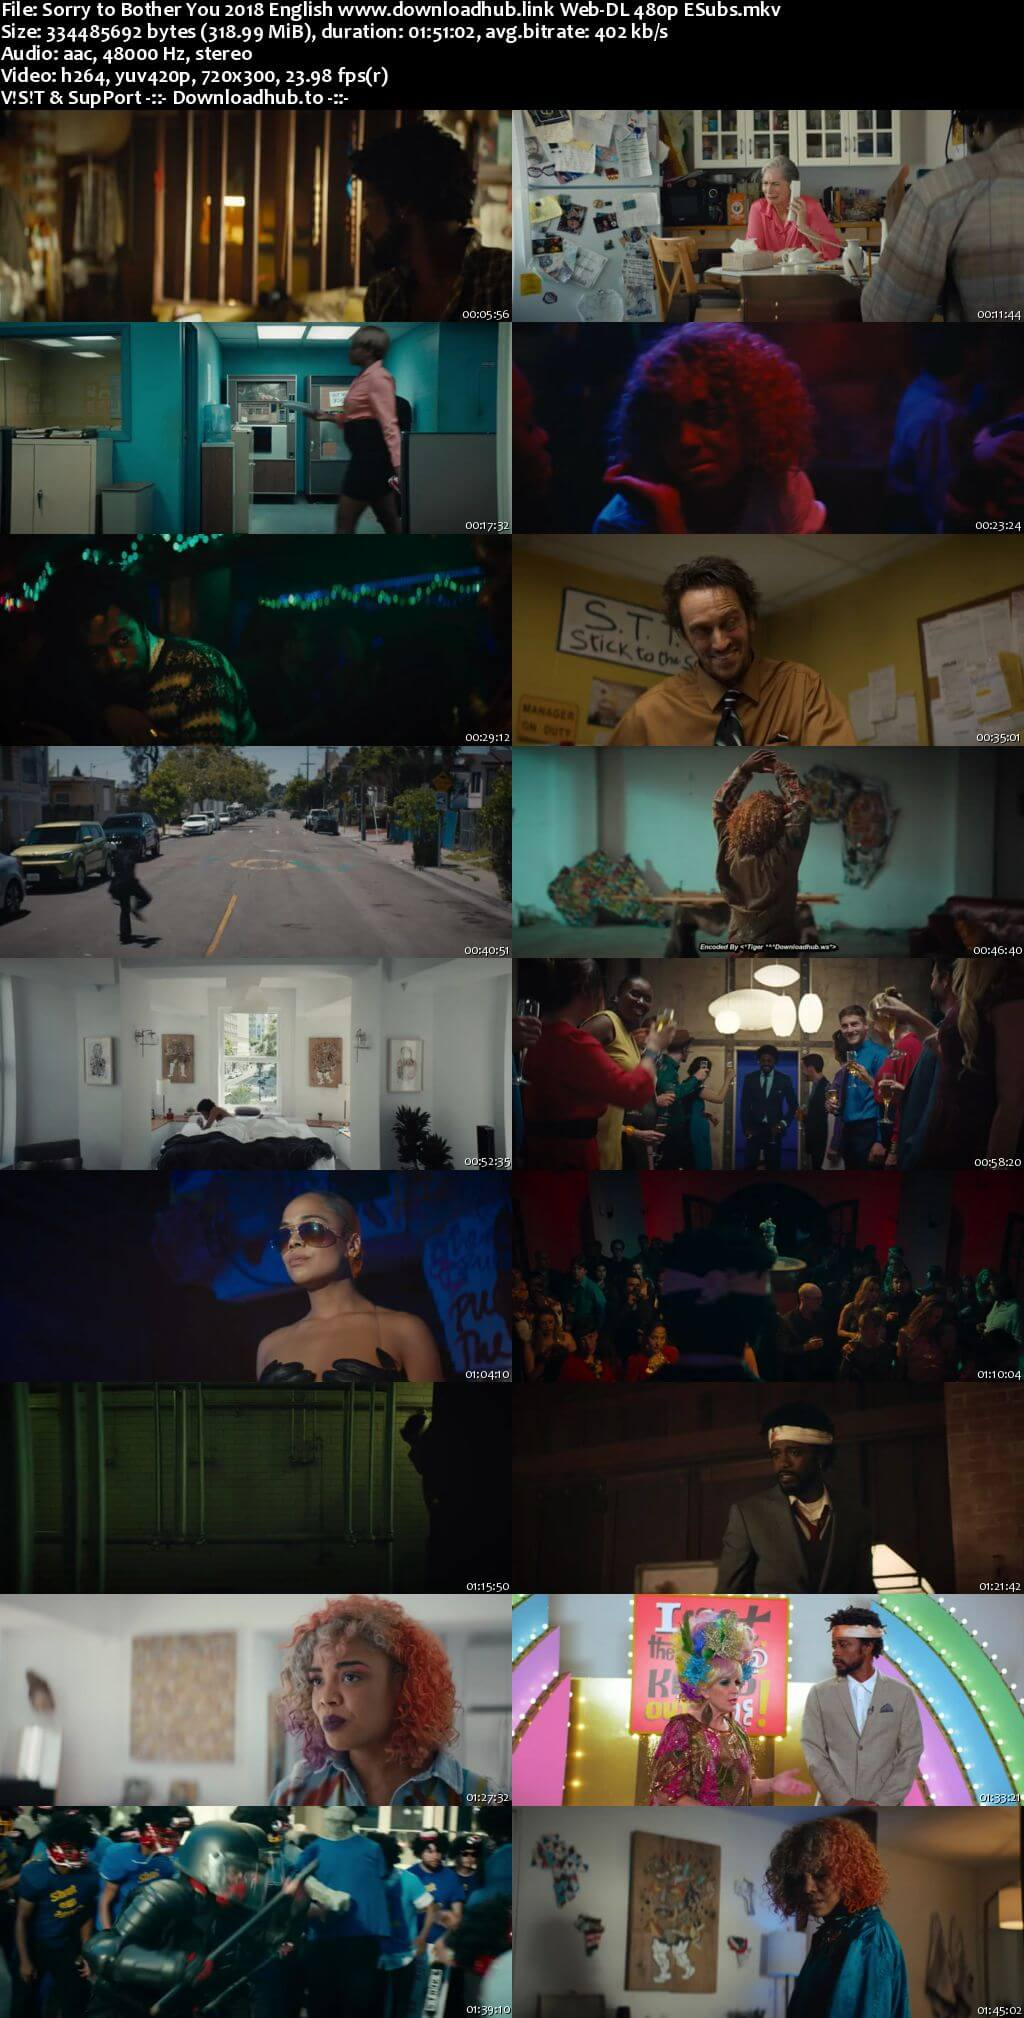 Sorry to Bother You 2018 English 300MB Web-DL 480p ESubs